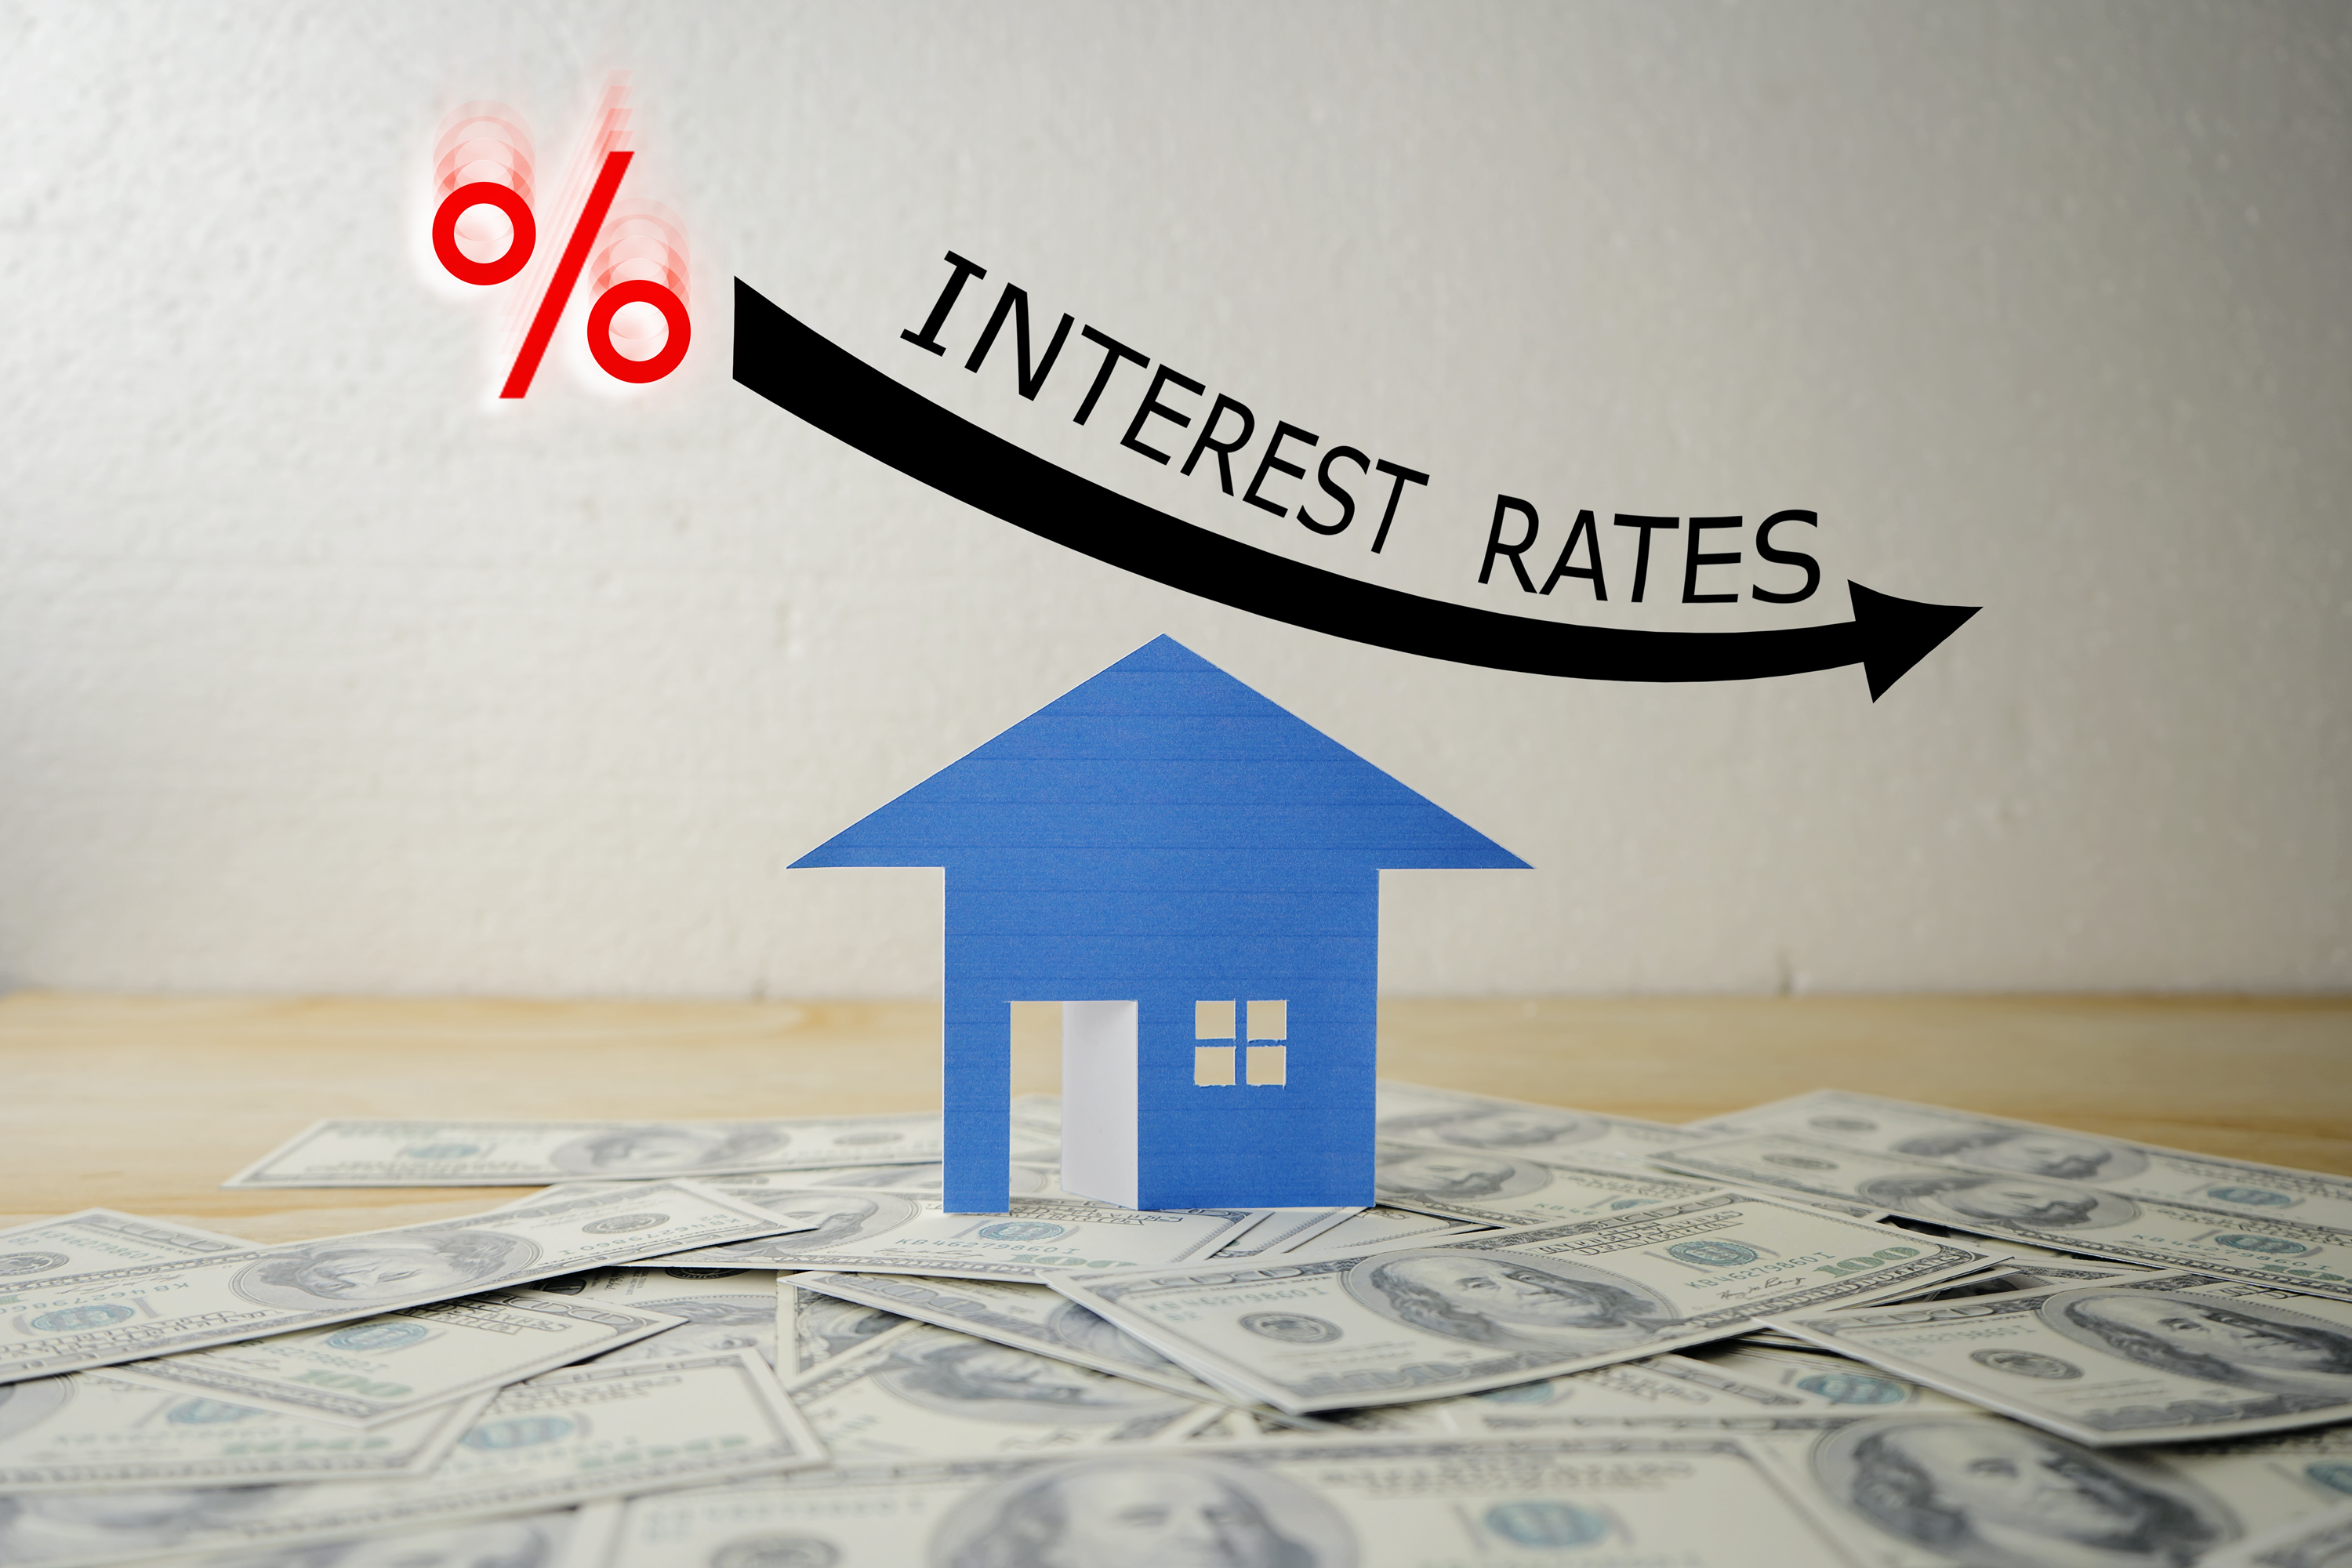 Low Interest Rates Increase Home Sales